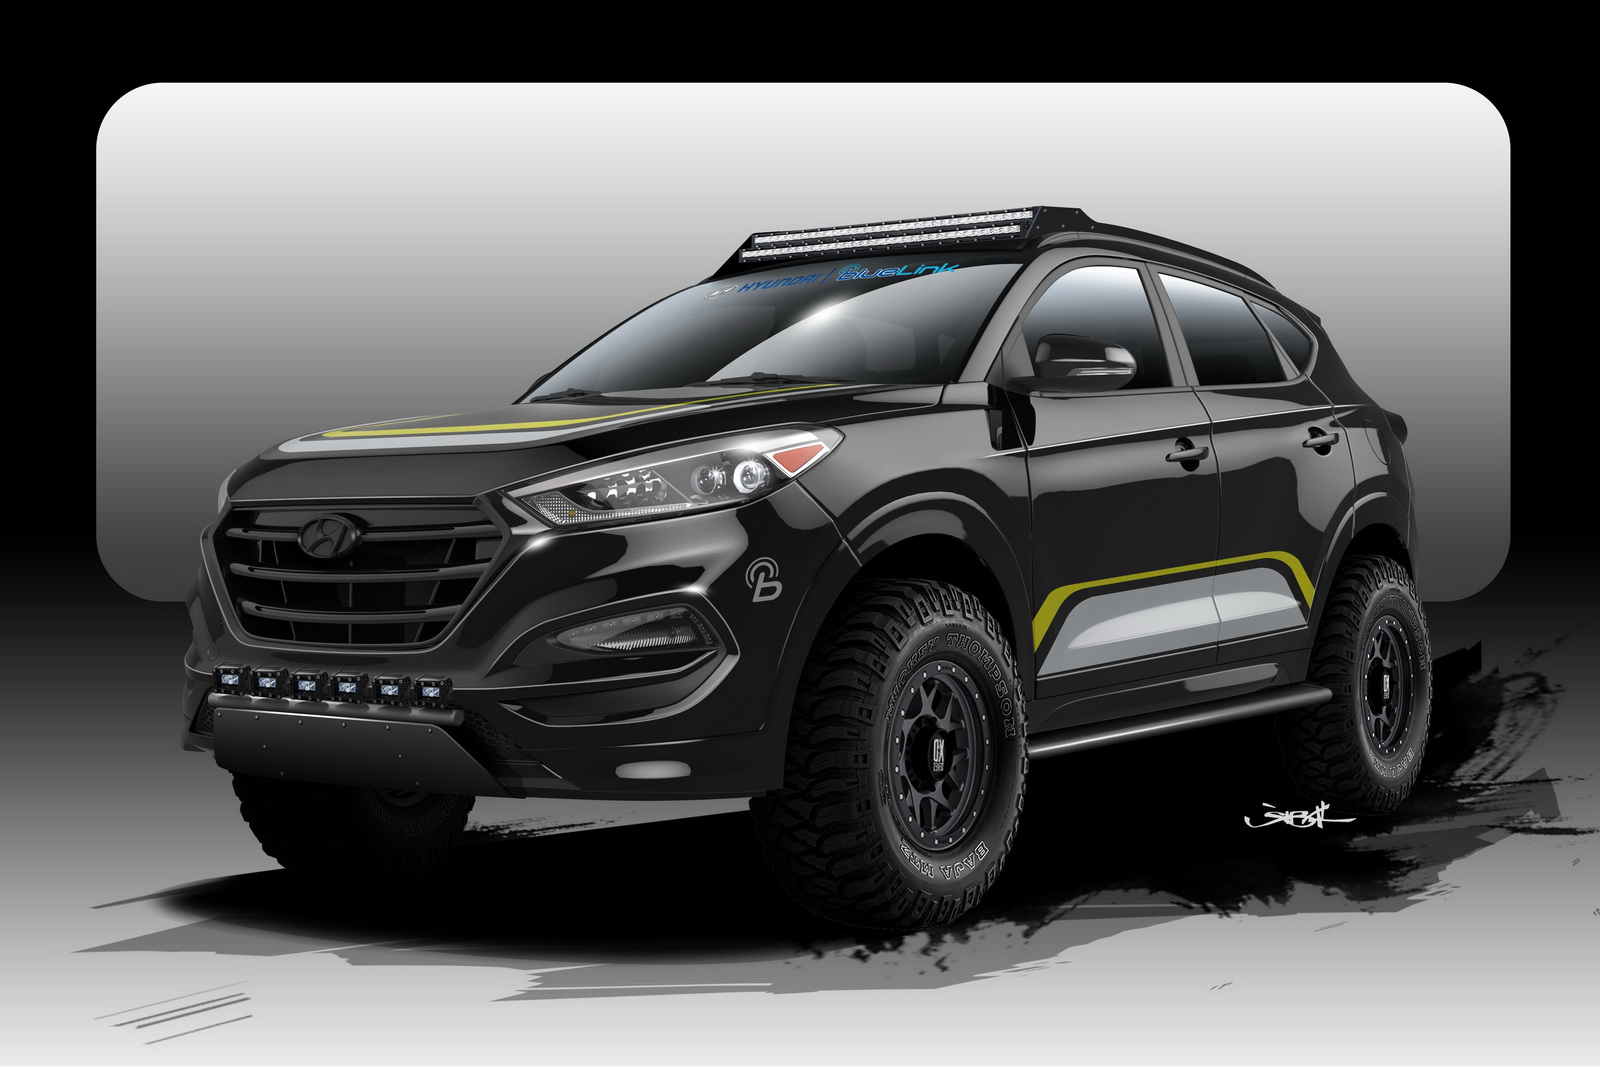 Hyundai Tucson Lift Kit >> Hyundai Tucson Goes to SEMA the Off-Road Way - autoevolution